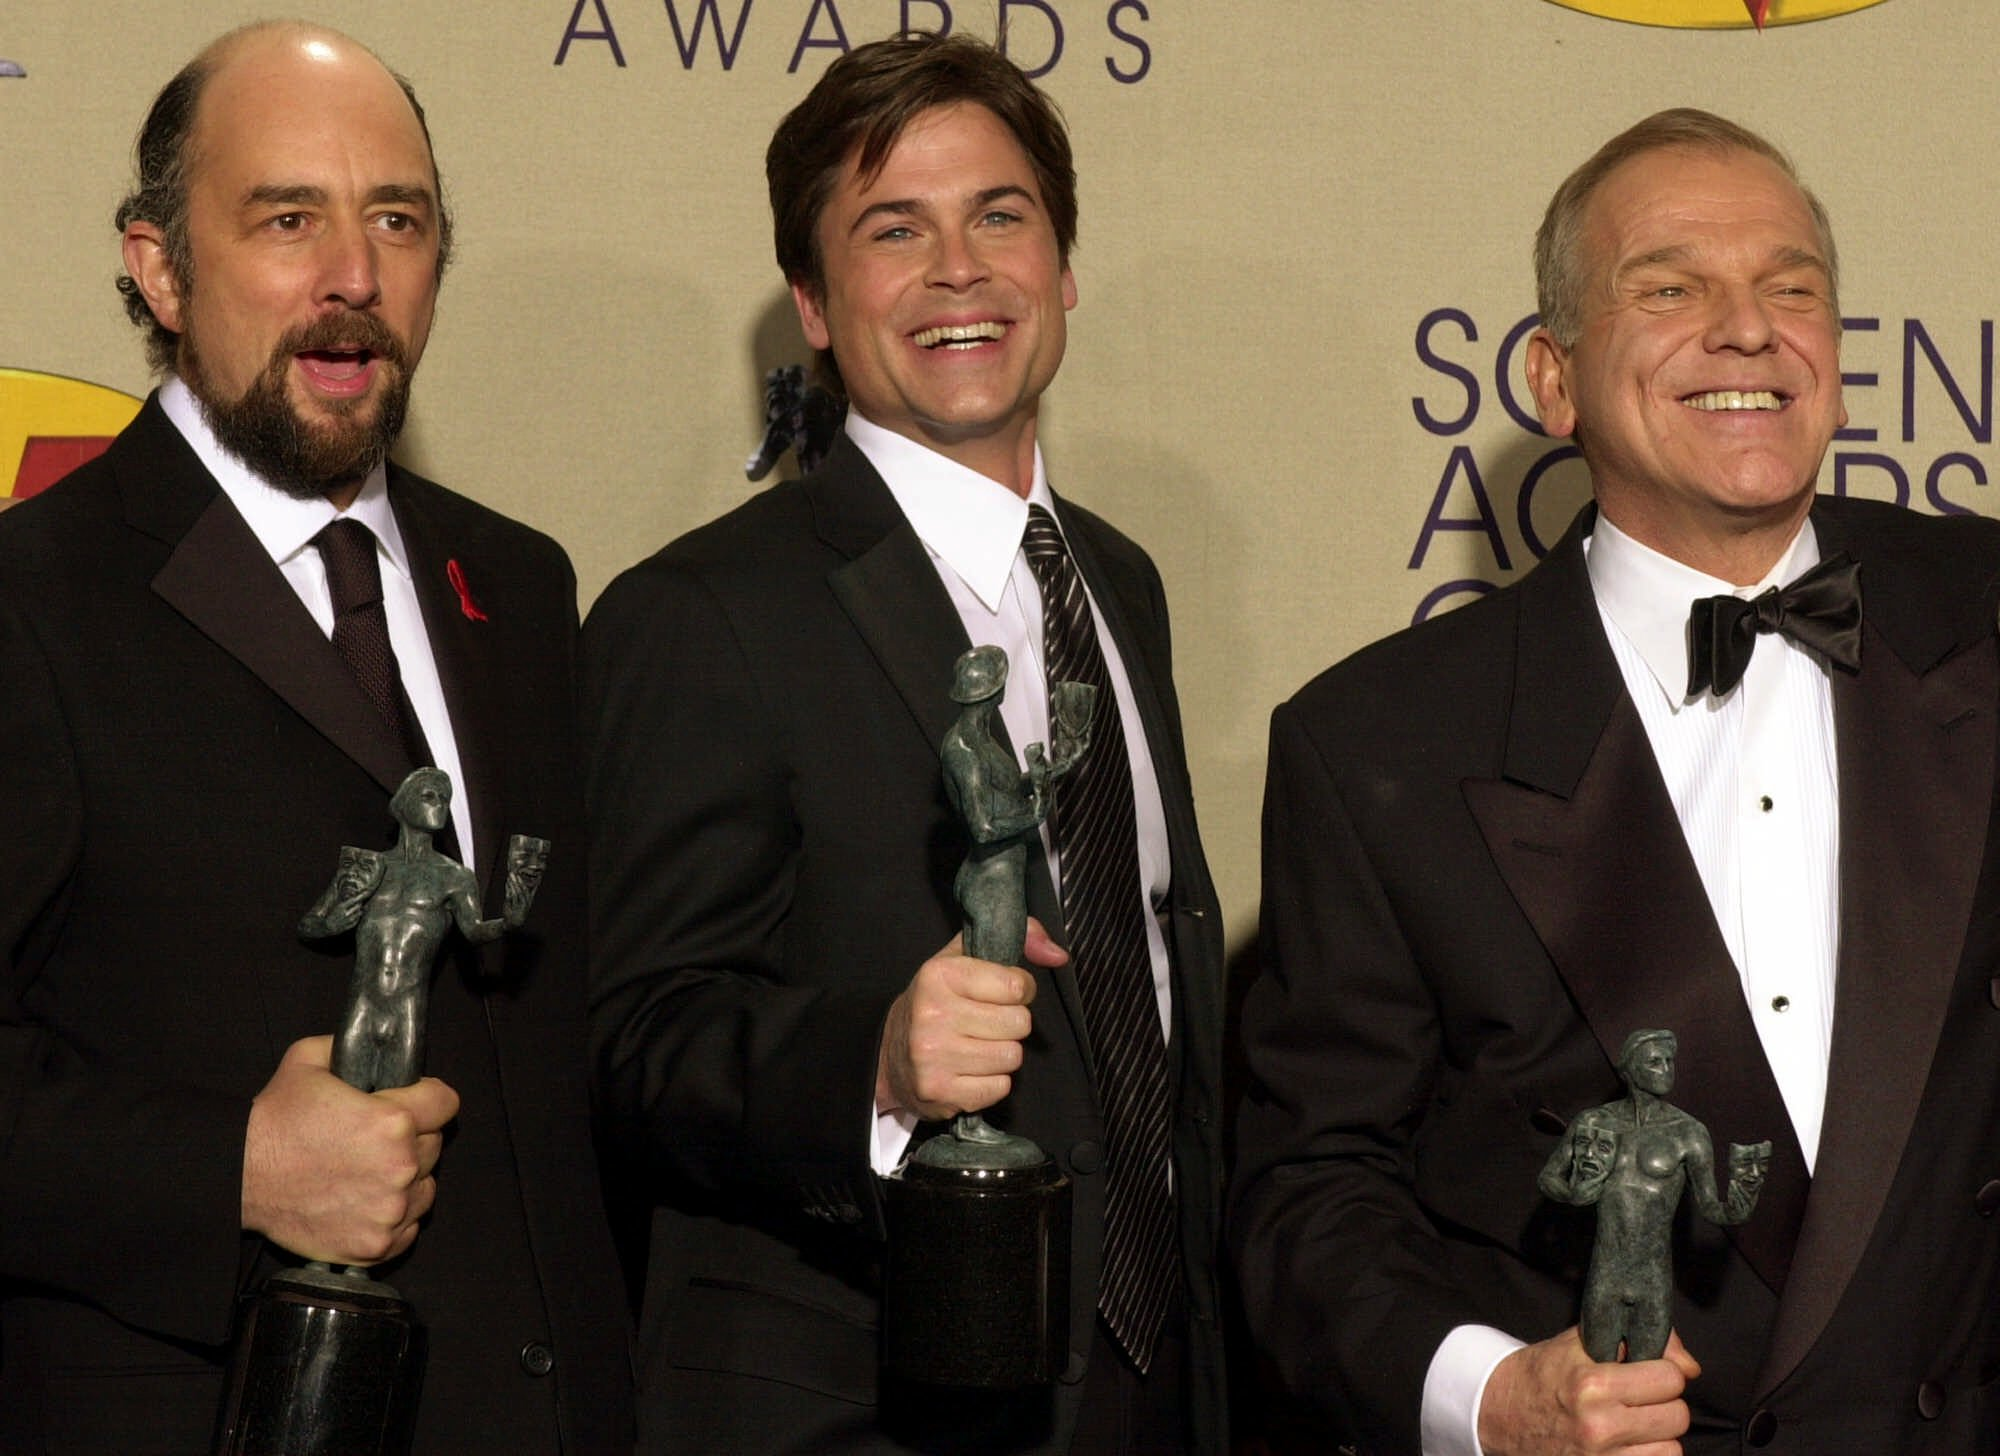 """Members of the cast of """"The West Wing"""" from left: Richard Schiff, Rob Lowe and John Spencer hold their awards for outstanding performance by an ensemble in a drama series at the 7th annual Screen Actors Guild Awards, Sunday, March 11, 2001, in Los Angeles. (AP Photo/Michael Caulfield)"""